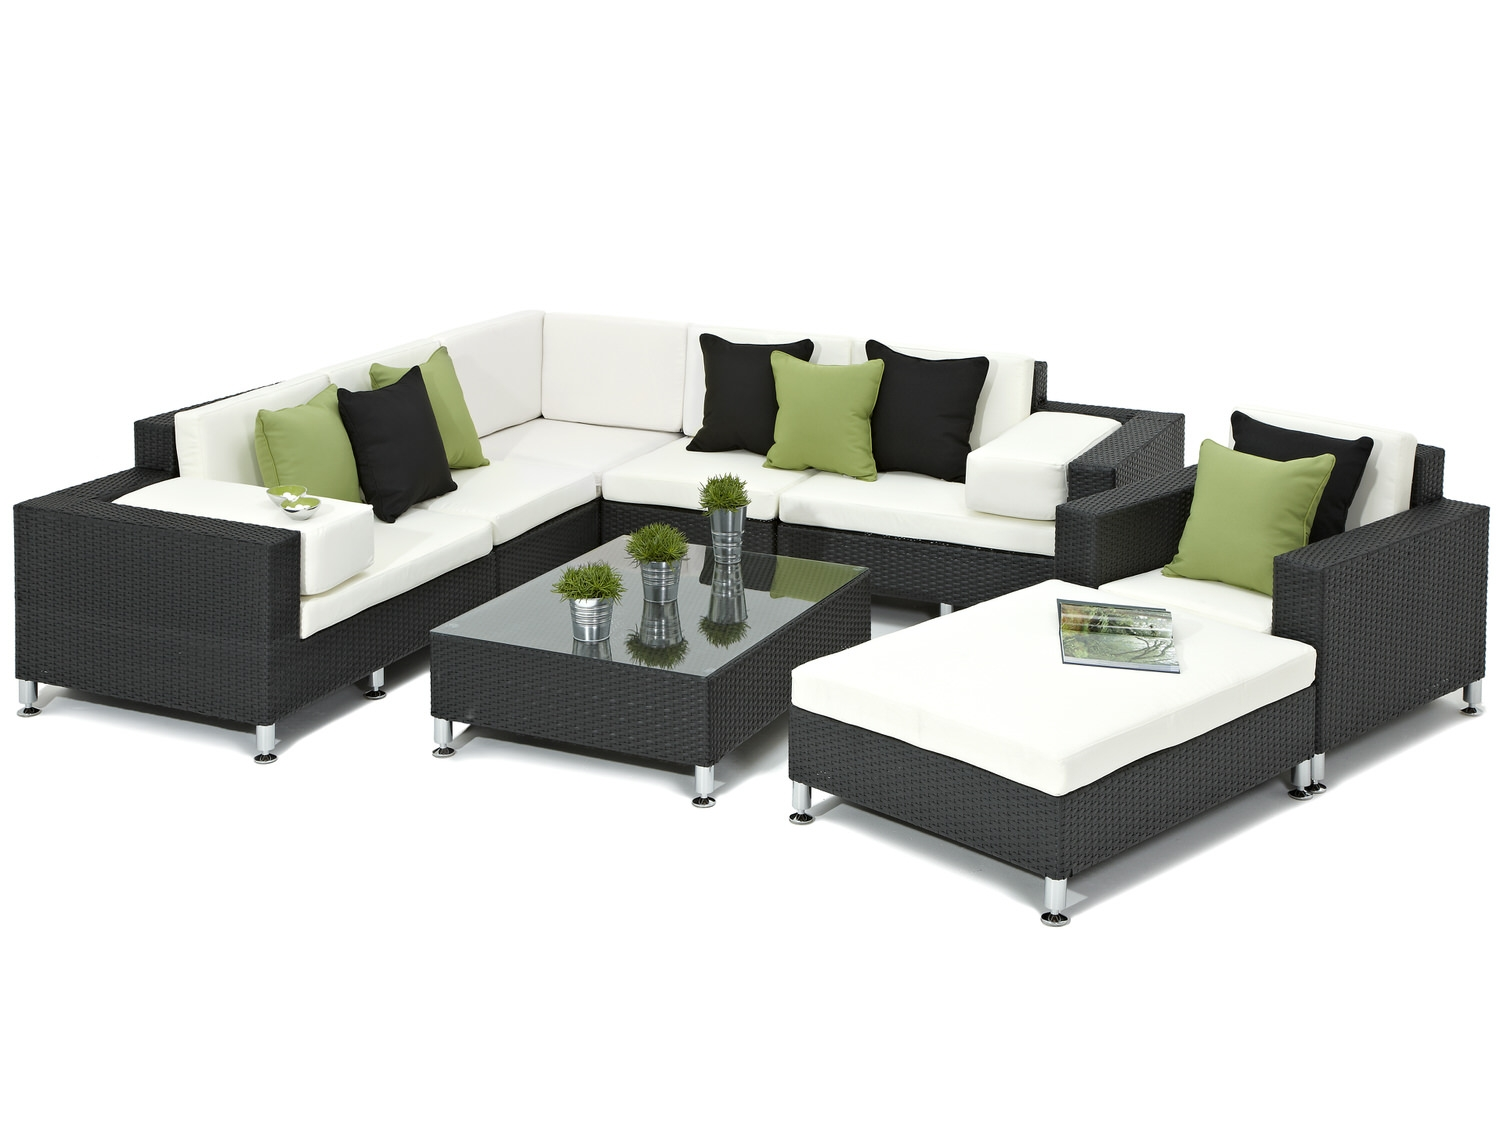 Black Rattan Sofa Uk Black Rattan Corner Sofa Set 5 Piece Black Rattan Corner